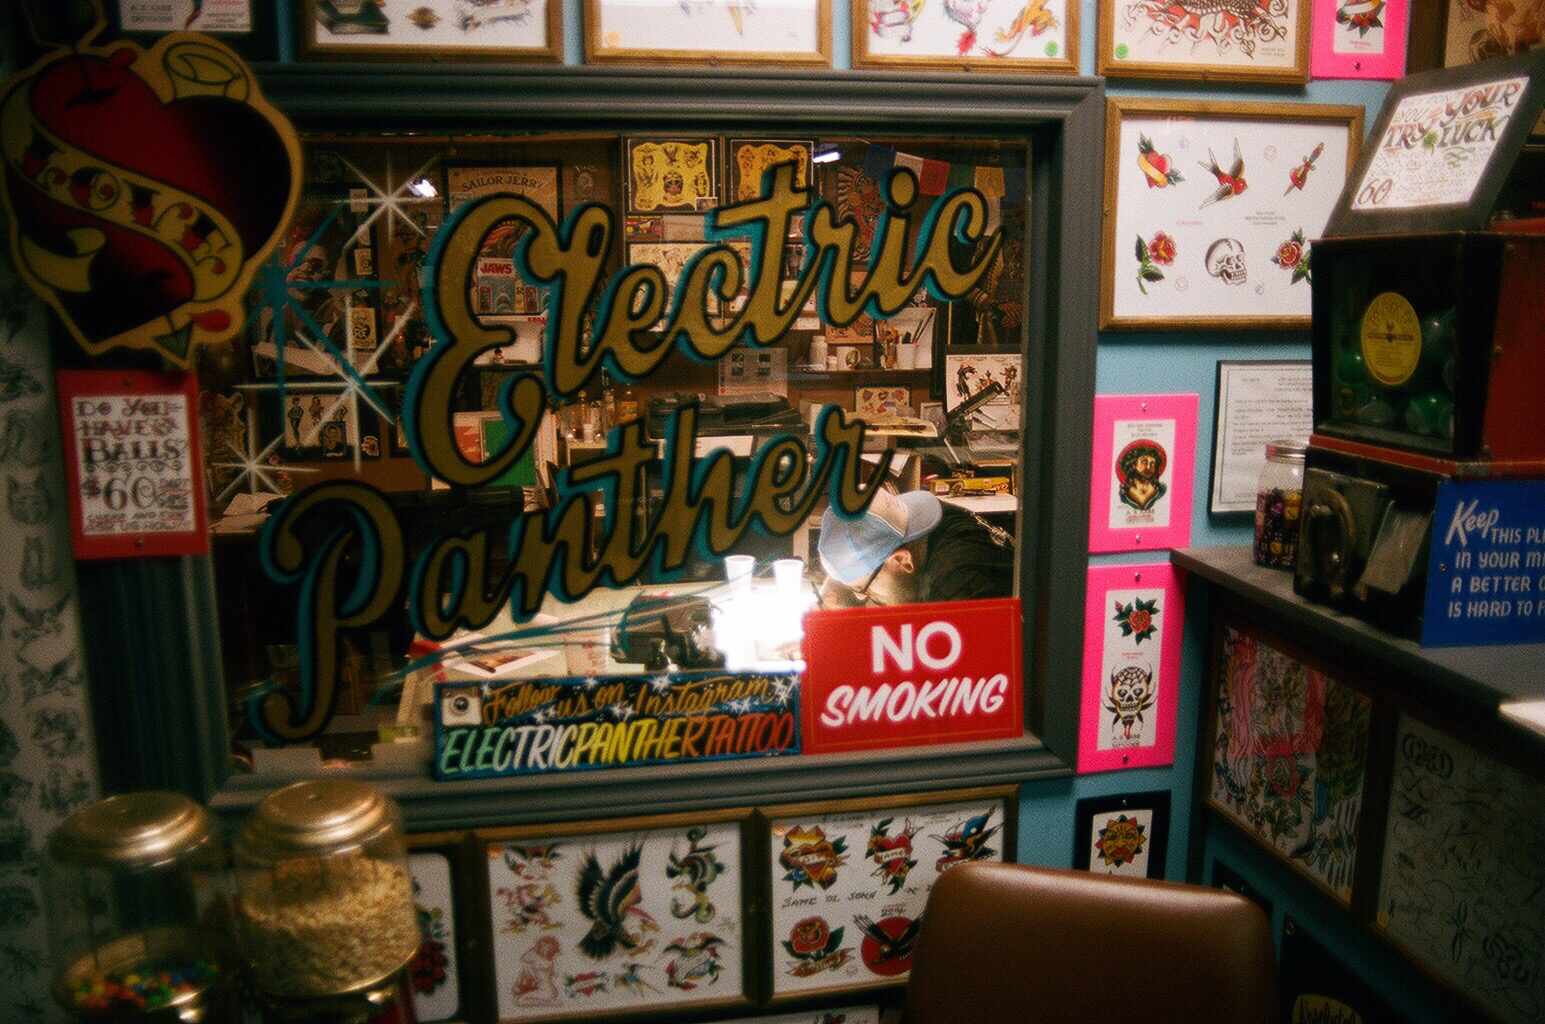 Electric Panther Tattoo, 11945 Perrin Beitel Road, San Antonio, Reviews and Appointments - GetInked